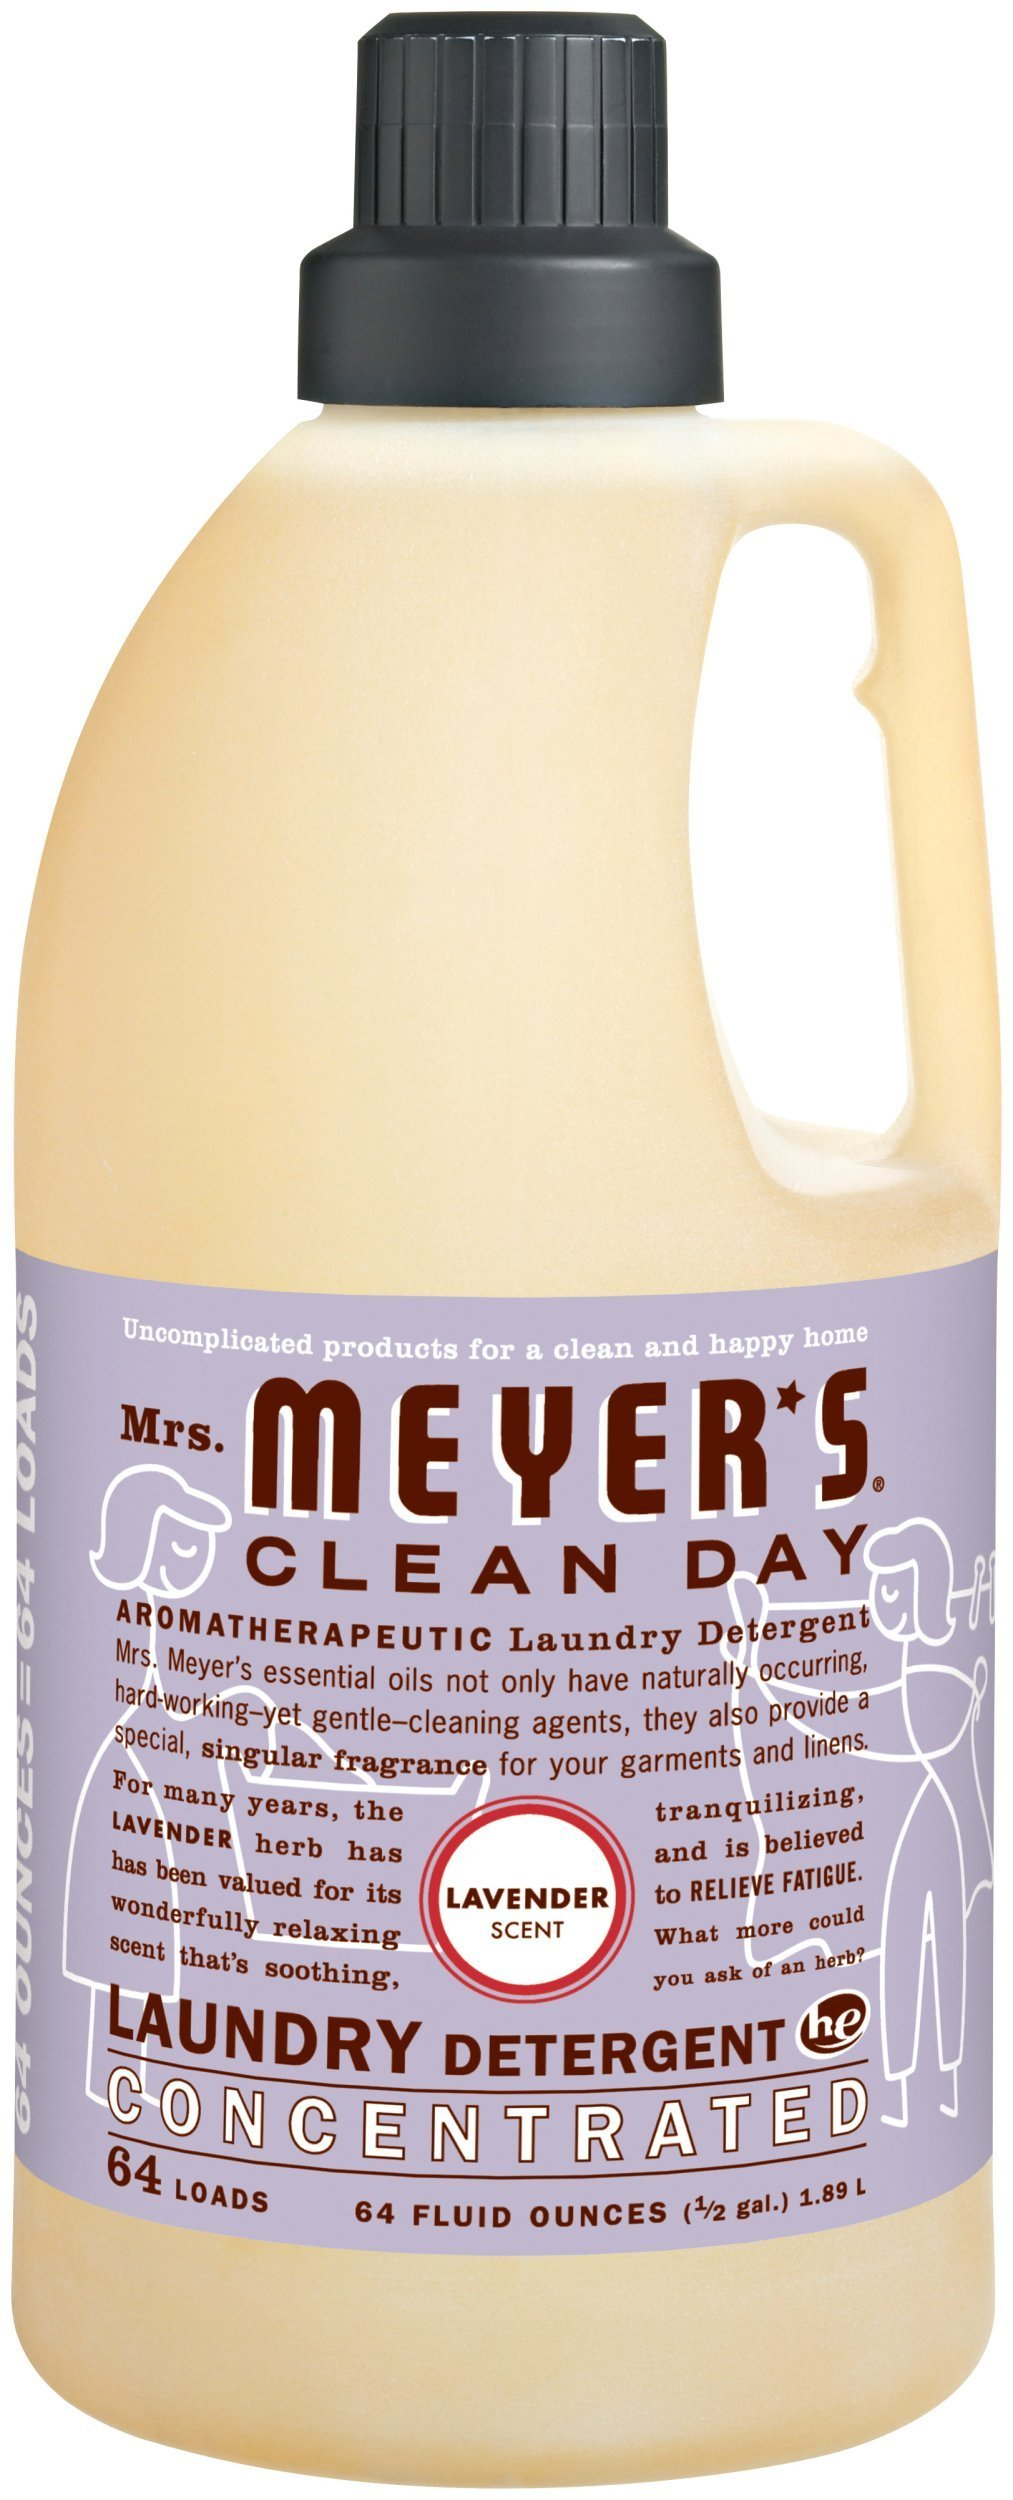 Mrs. Meyer's Clean Day 2x HE Liquid Laundry Detergent, Lavender, 64-Ounce Bottles (Pack of 6)